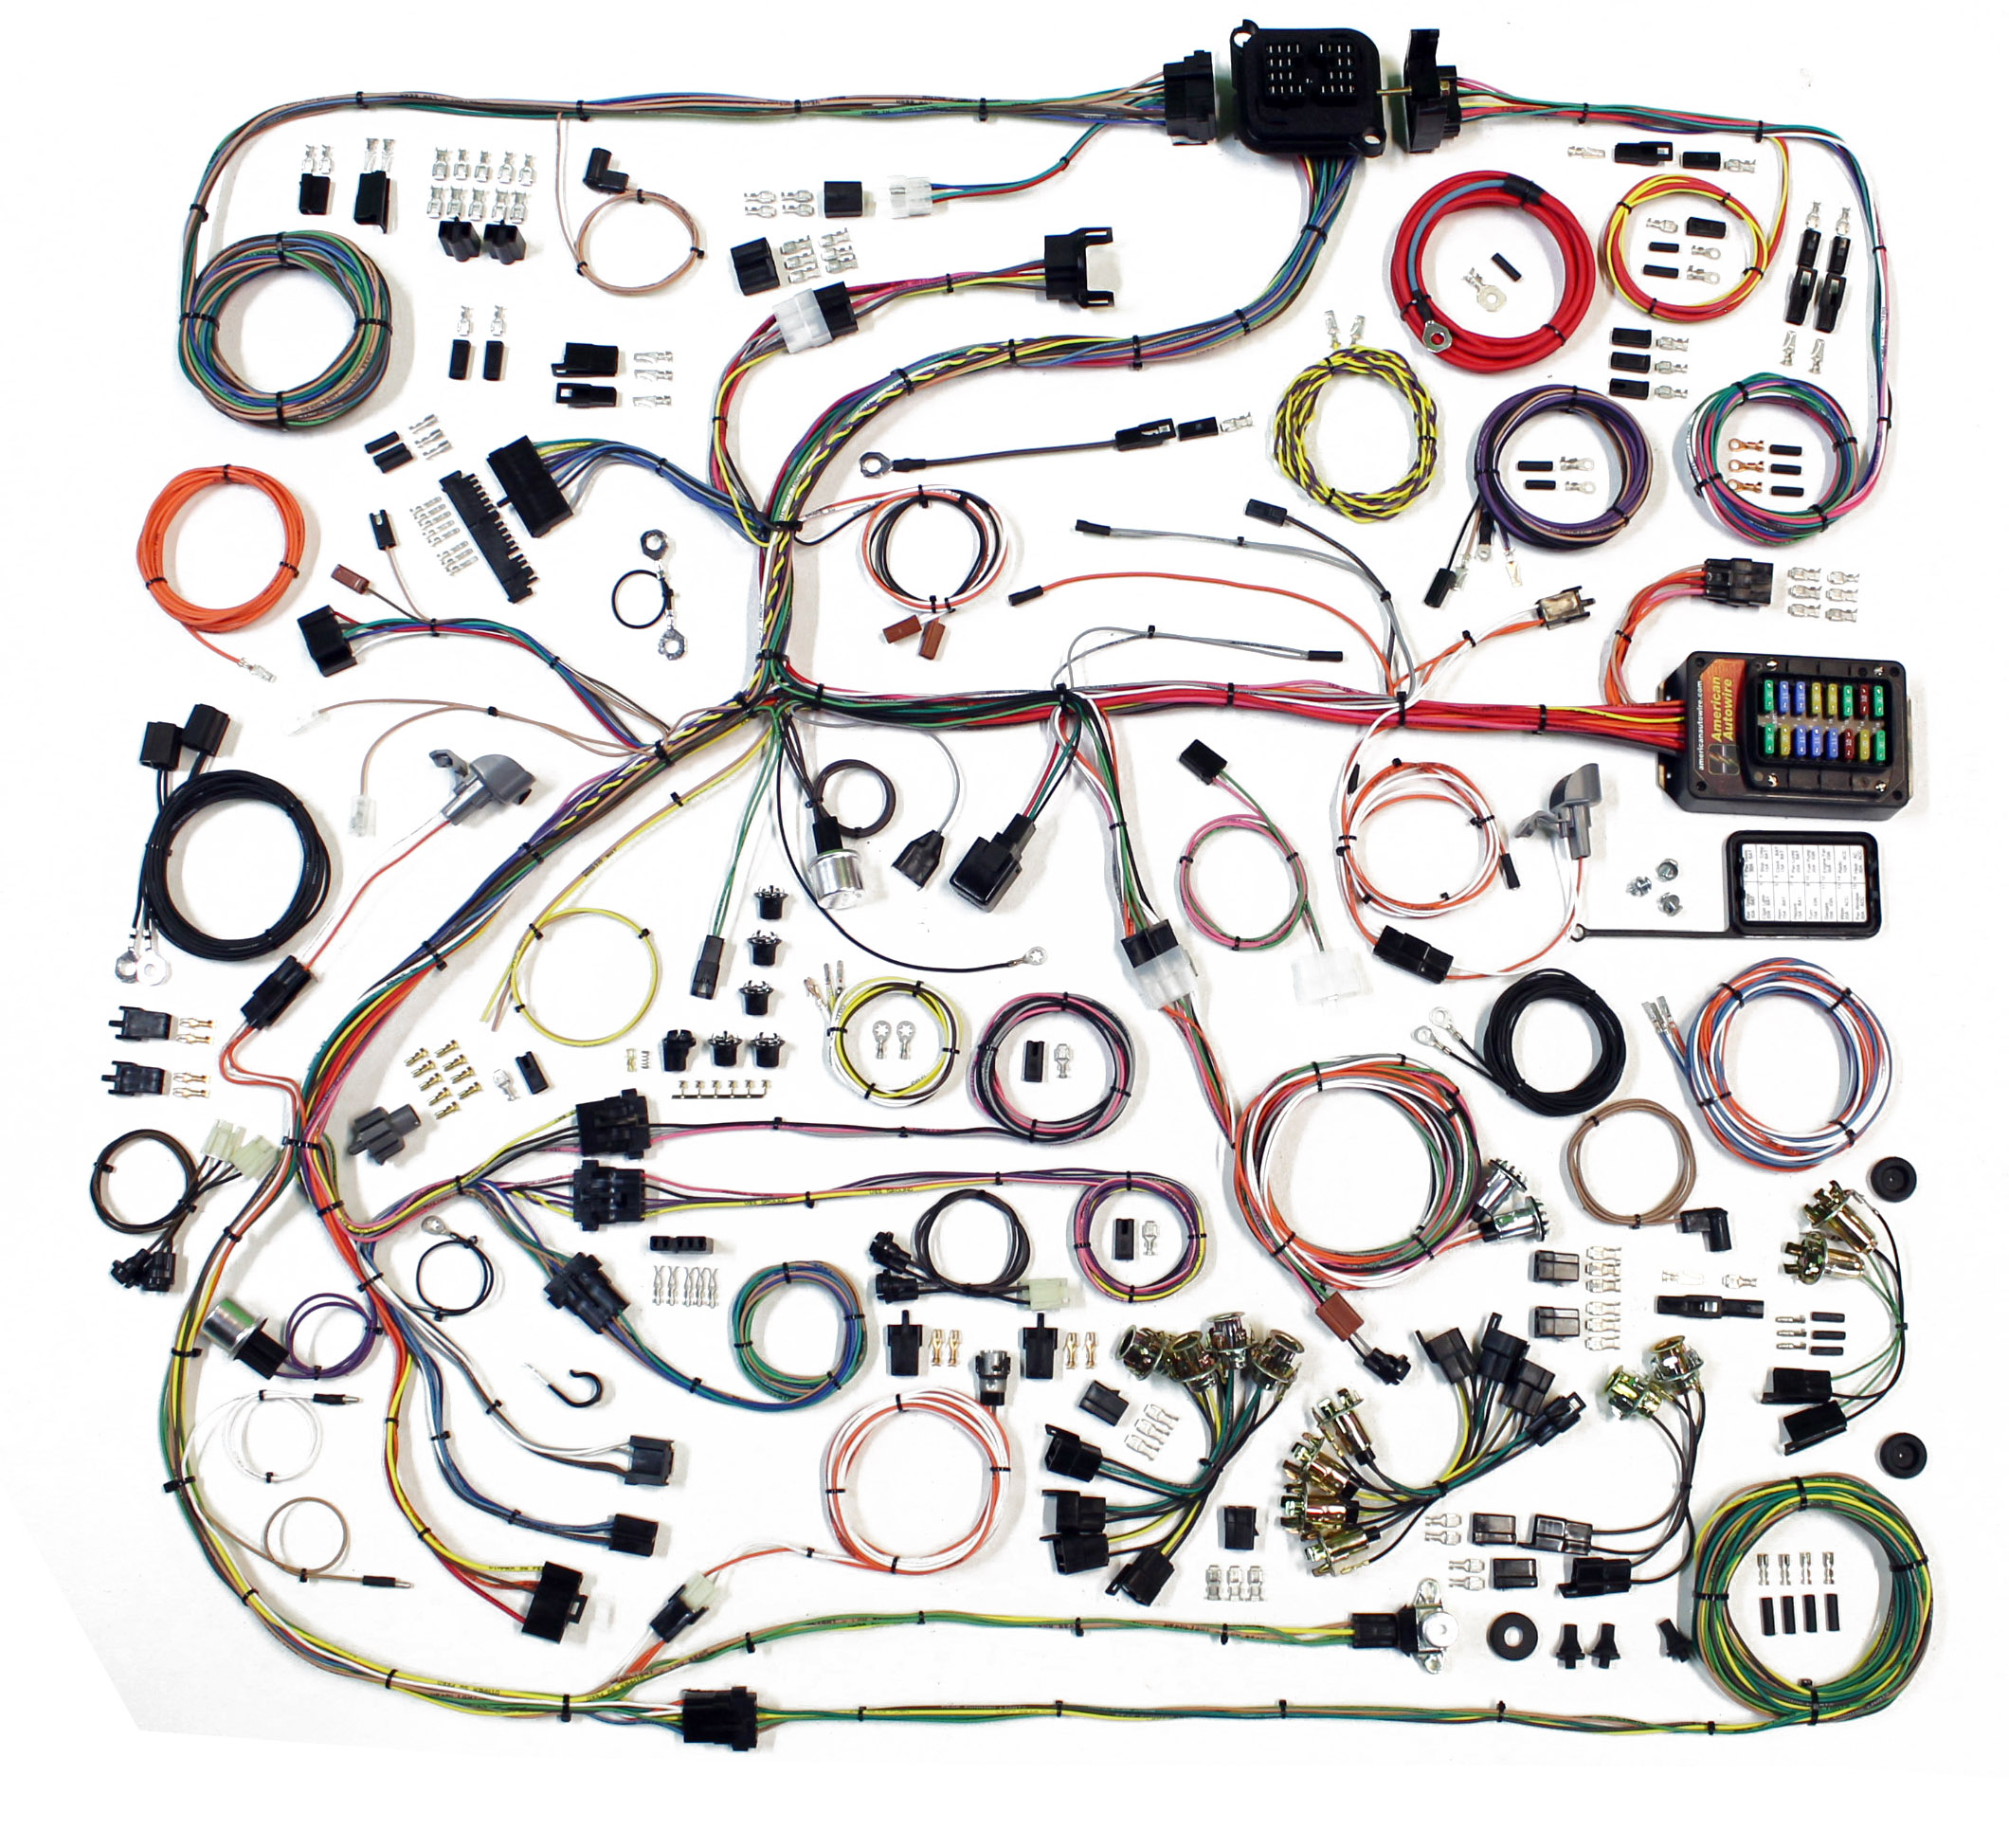 1968-1970 American Autowire B Body classic update complete wiring harness  kit.